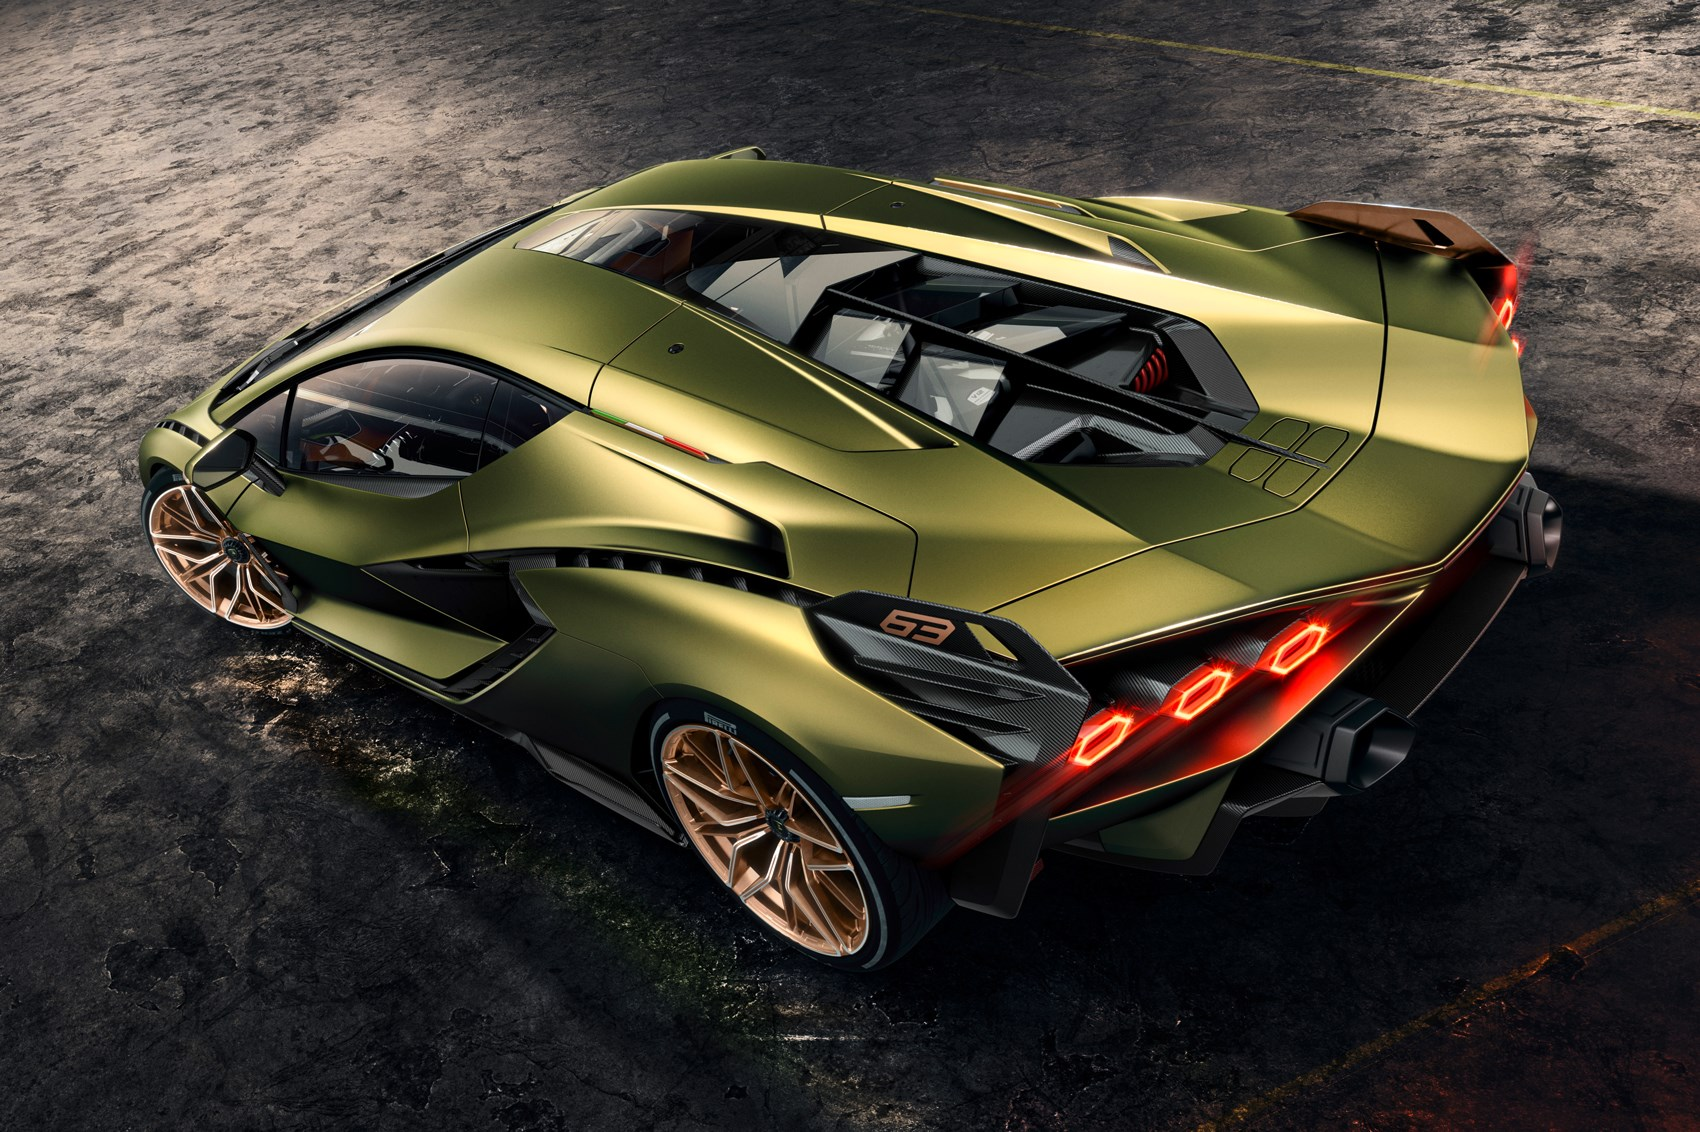 New Lamborghini Sian: First hybrid Lambo revealed at